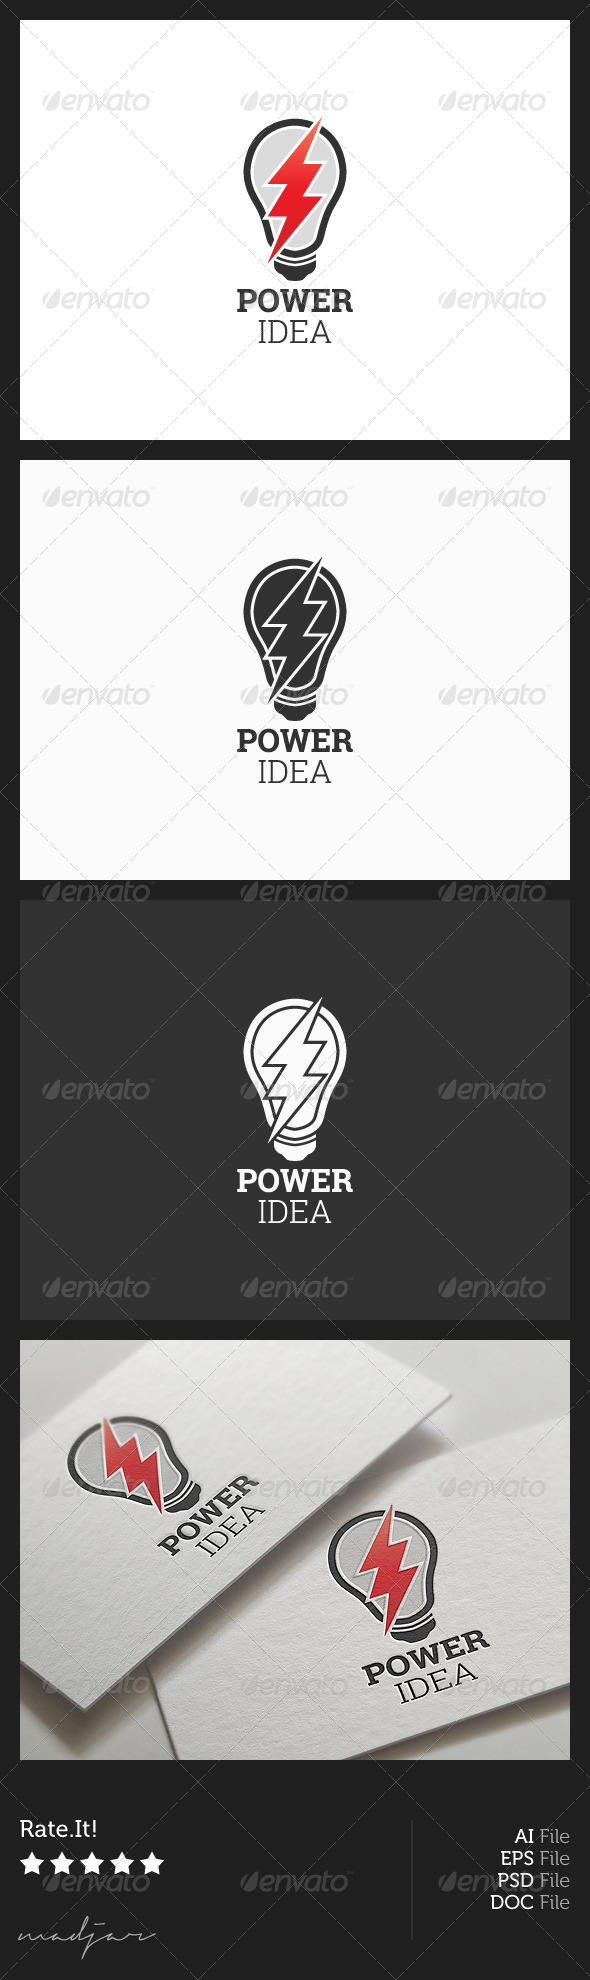 Power Idea Logo